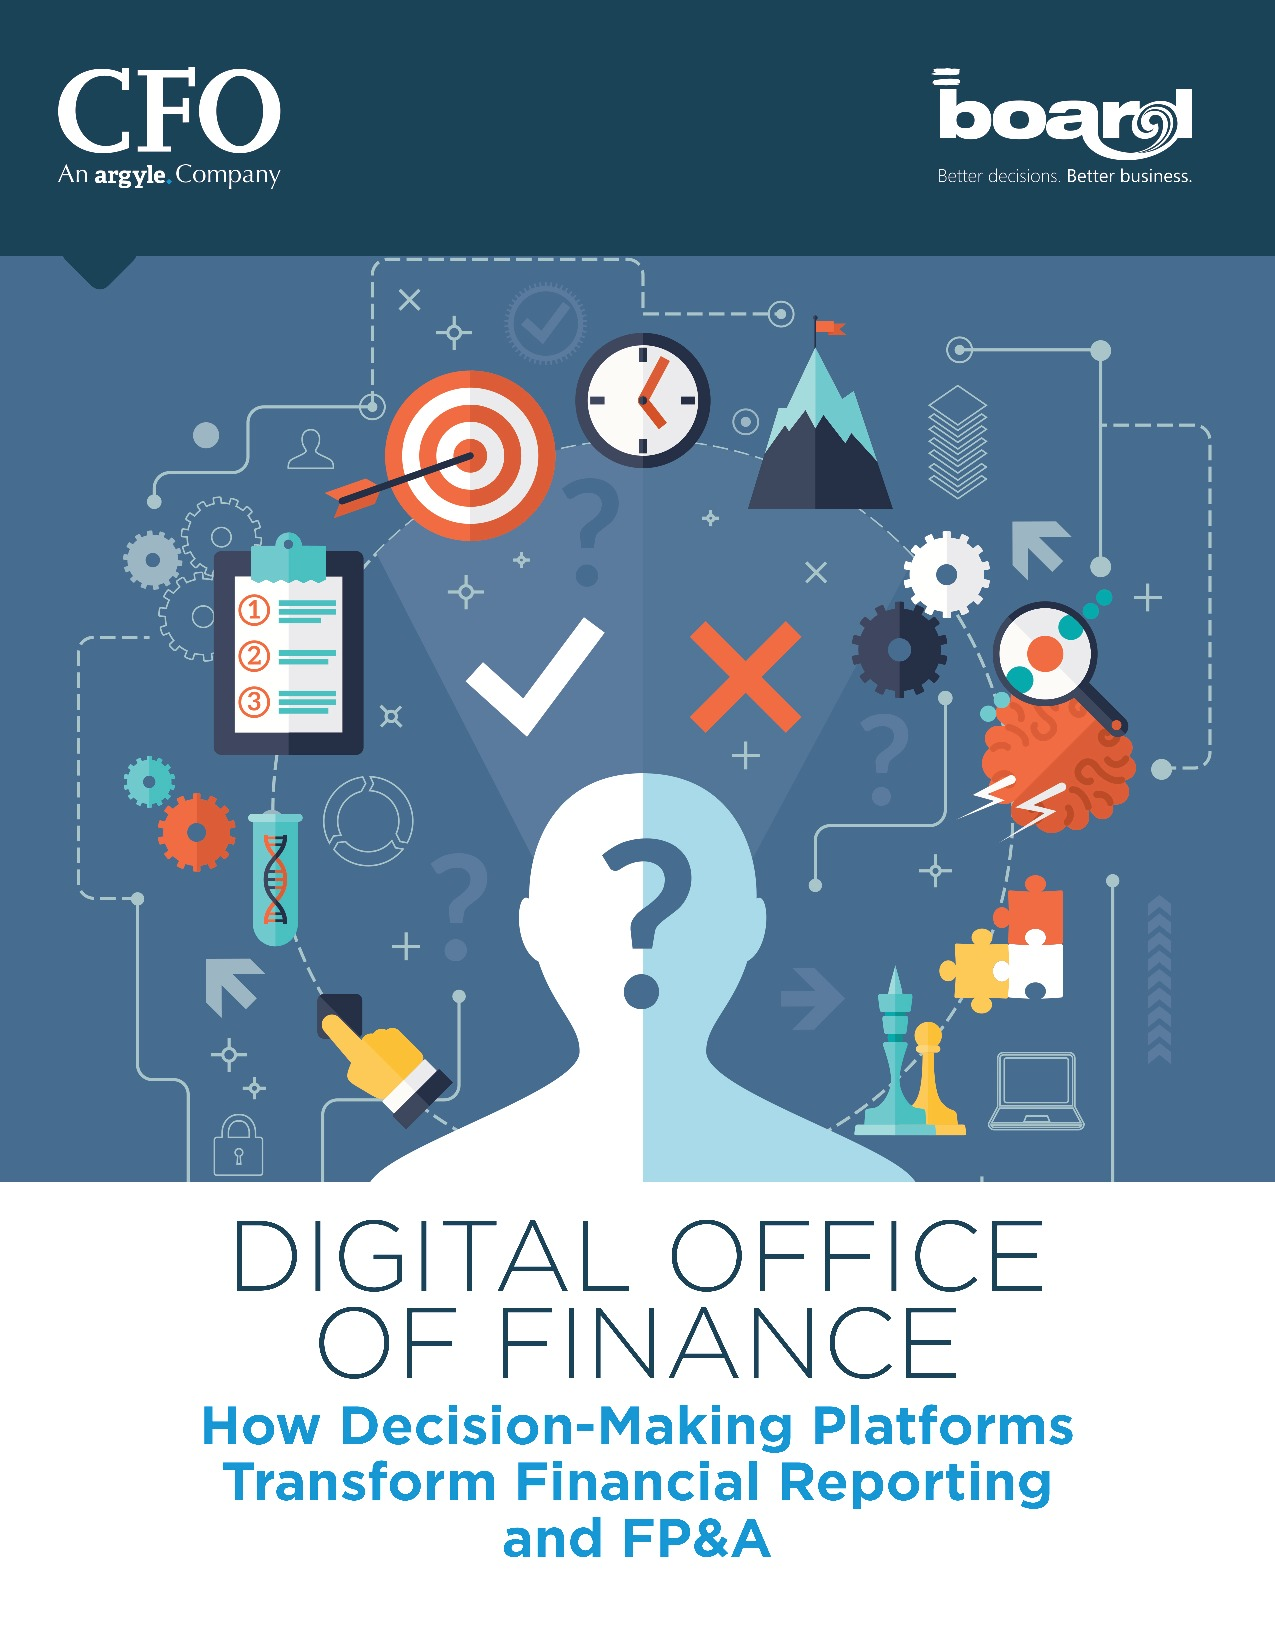 CFO - How Decision-Making Platforms Transform Financial Reporting and FP&A | Page 1